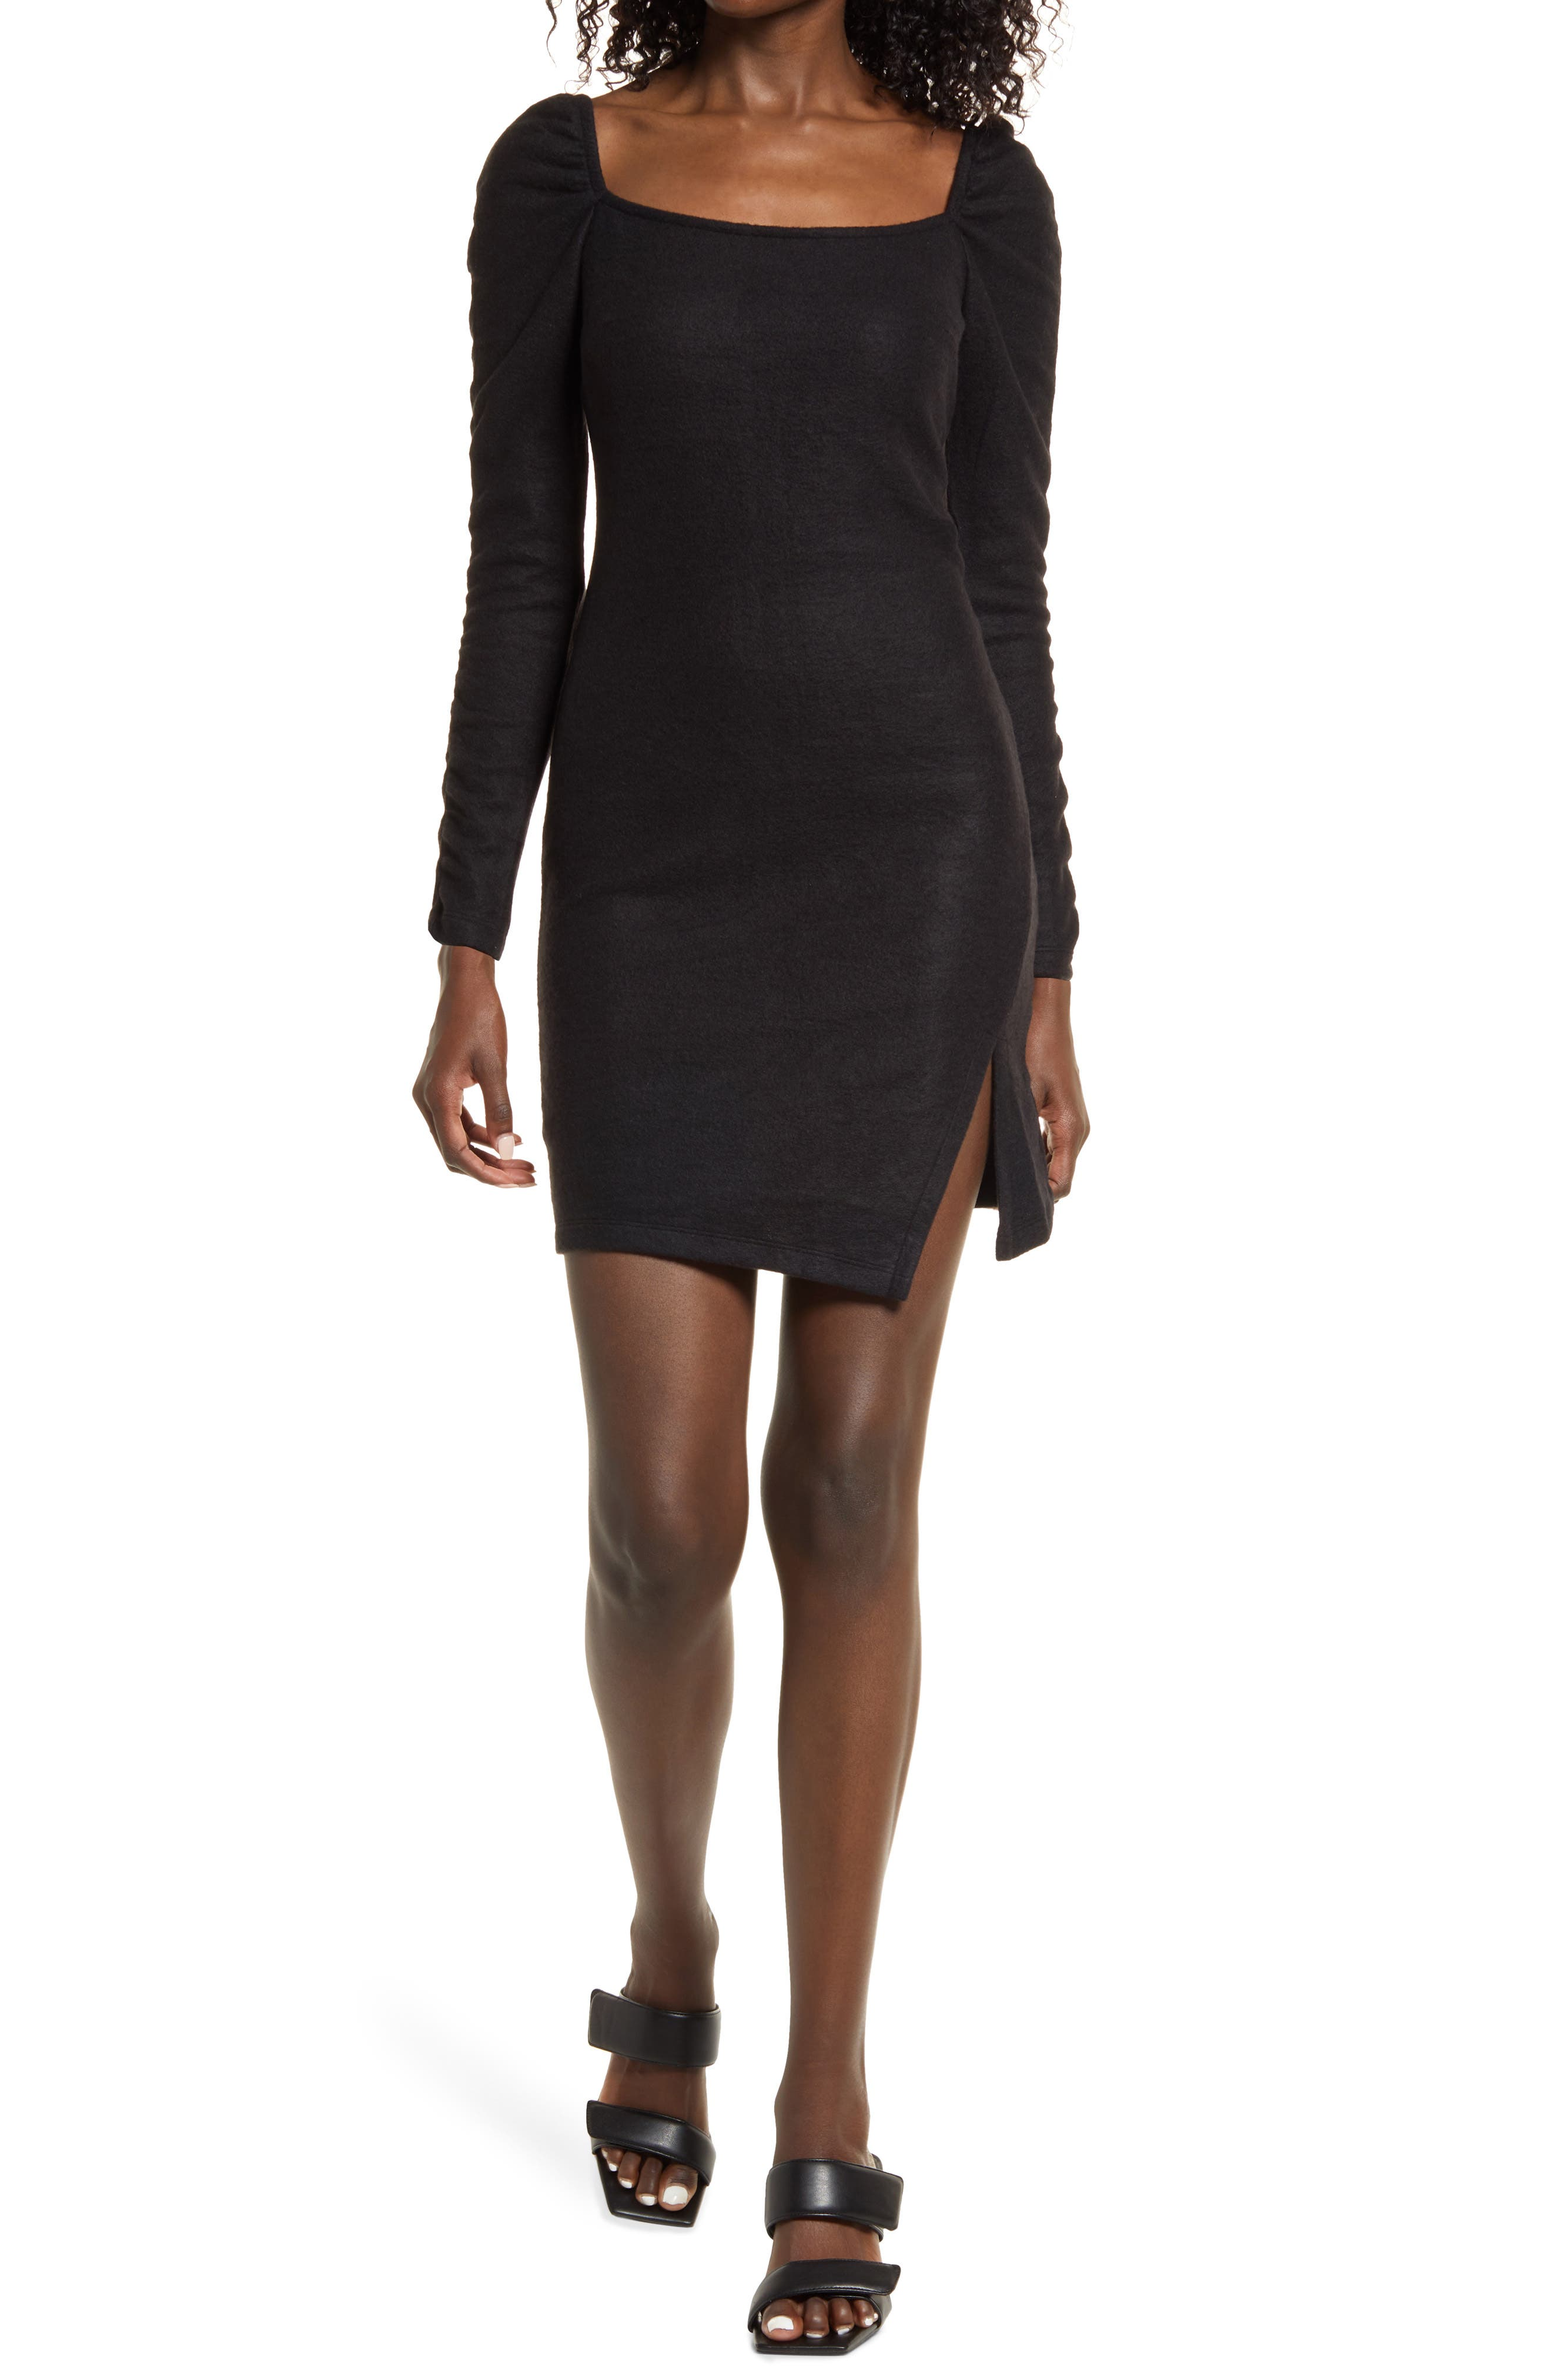 Women's Kendall + Kylie Ruched Long Sleeve Minidress